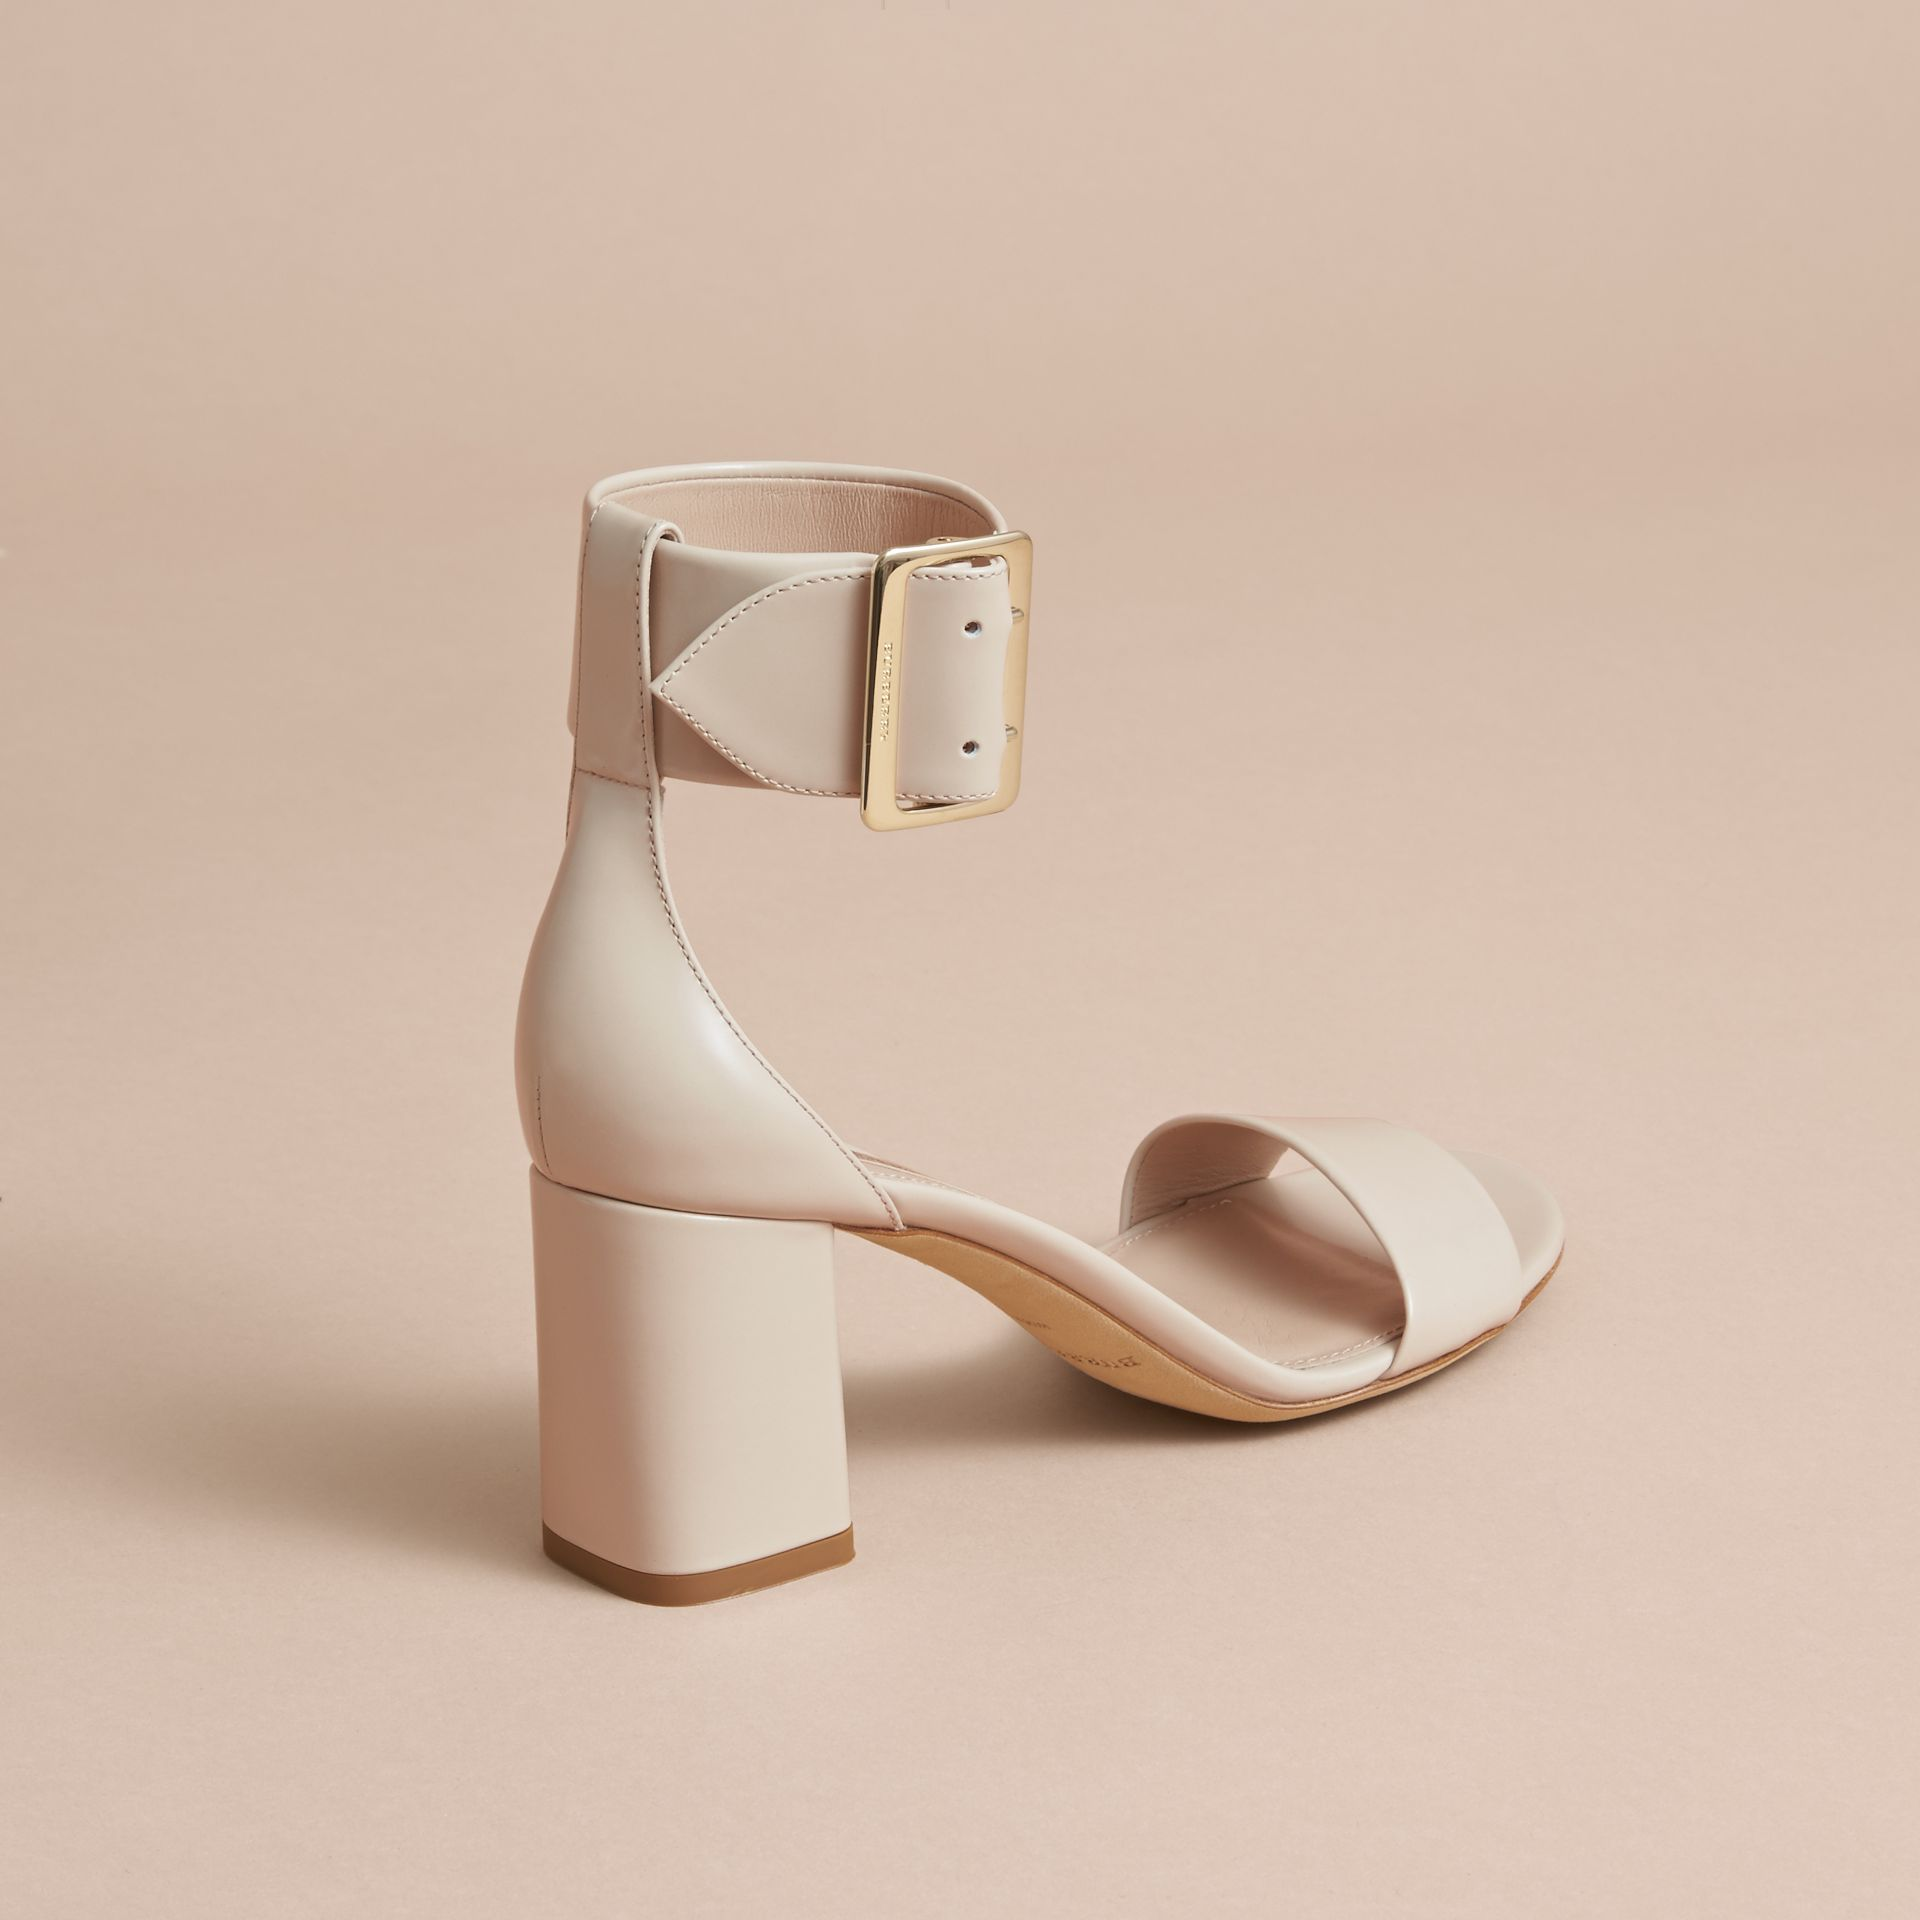 Buckle Detail Patent Leather Sandals in Pale Taupe - Women | Burberry Canada - gallery image 4